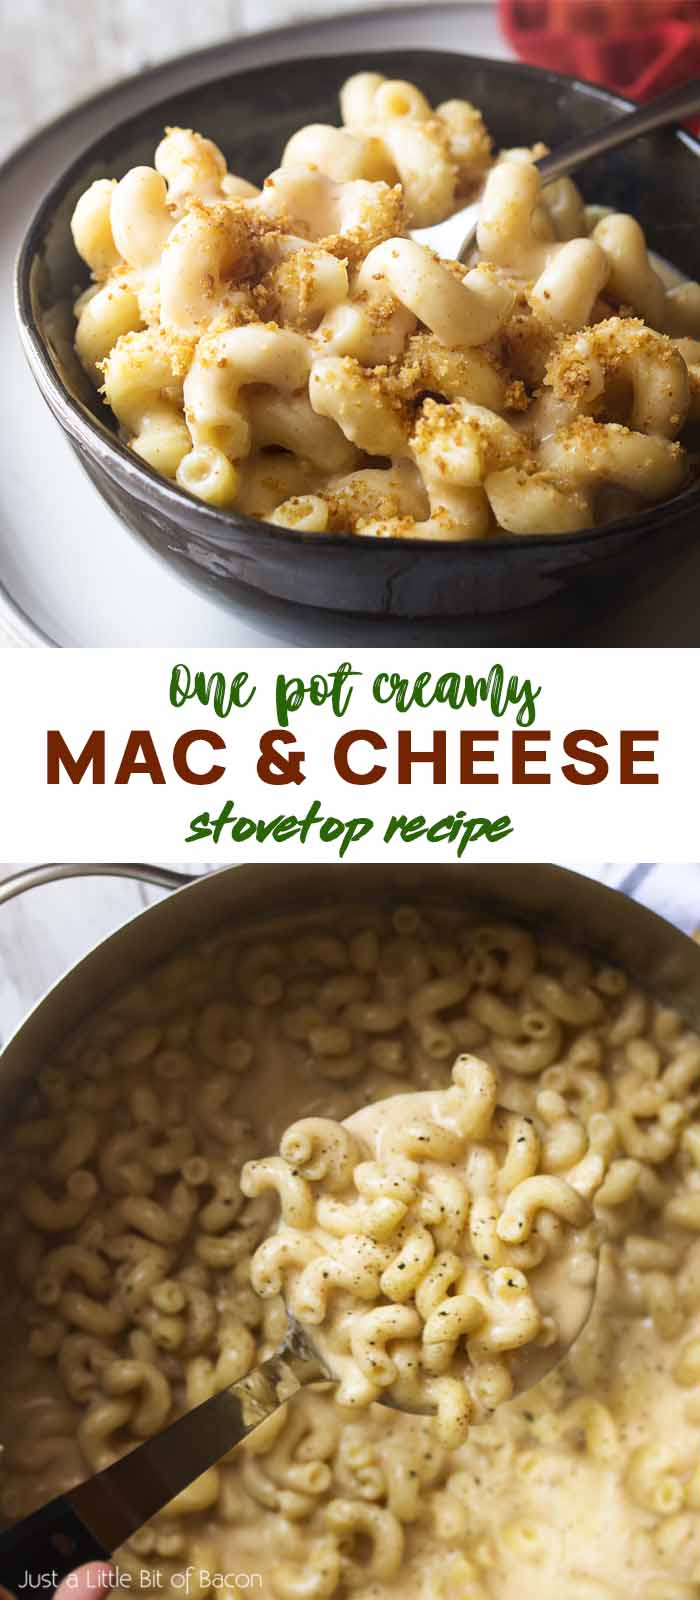 Creamy pasta in a bowl and in a pot with text overlay - Mac and Cheese.